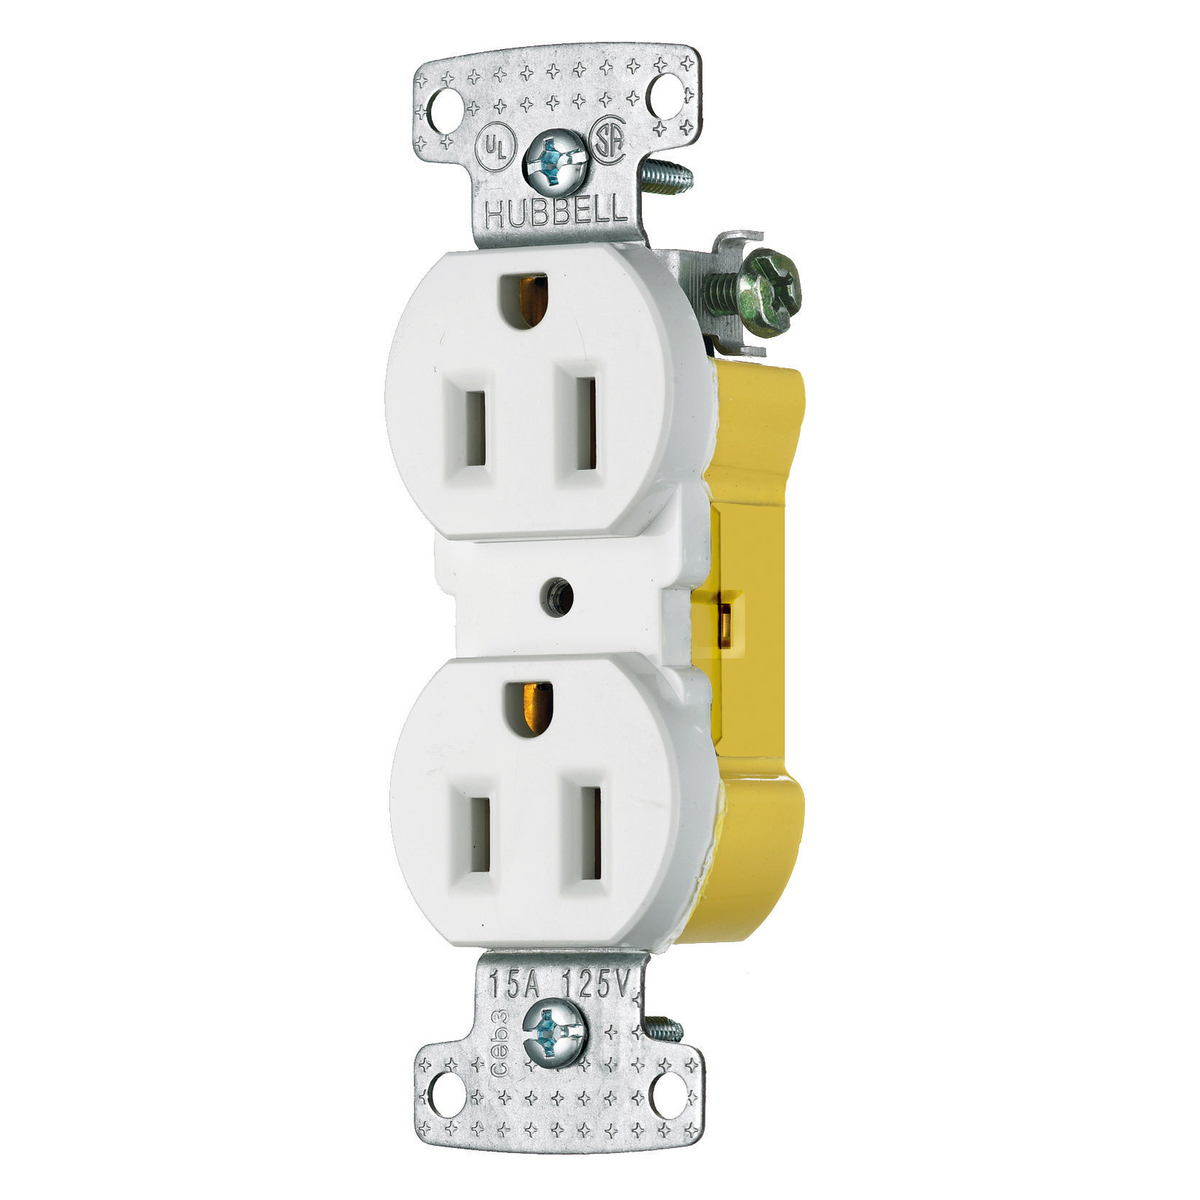 rr15ew receptacles residential devices wiring devices rh hubbell com residential & wiring devices division eaton residential wiring devices